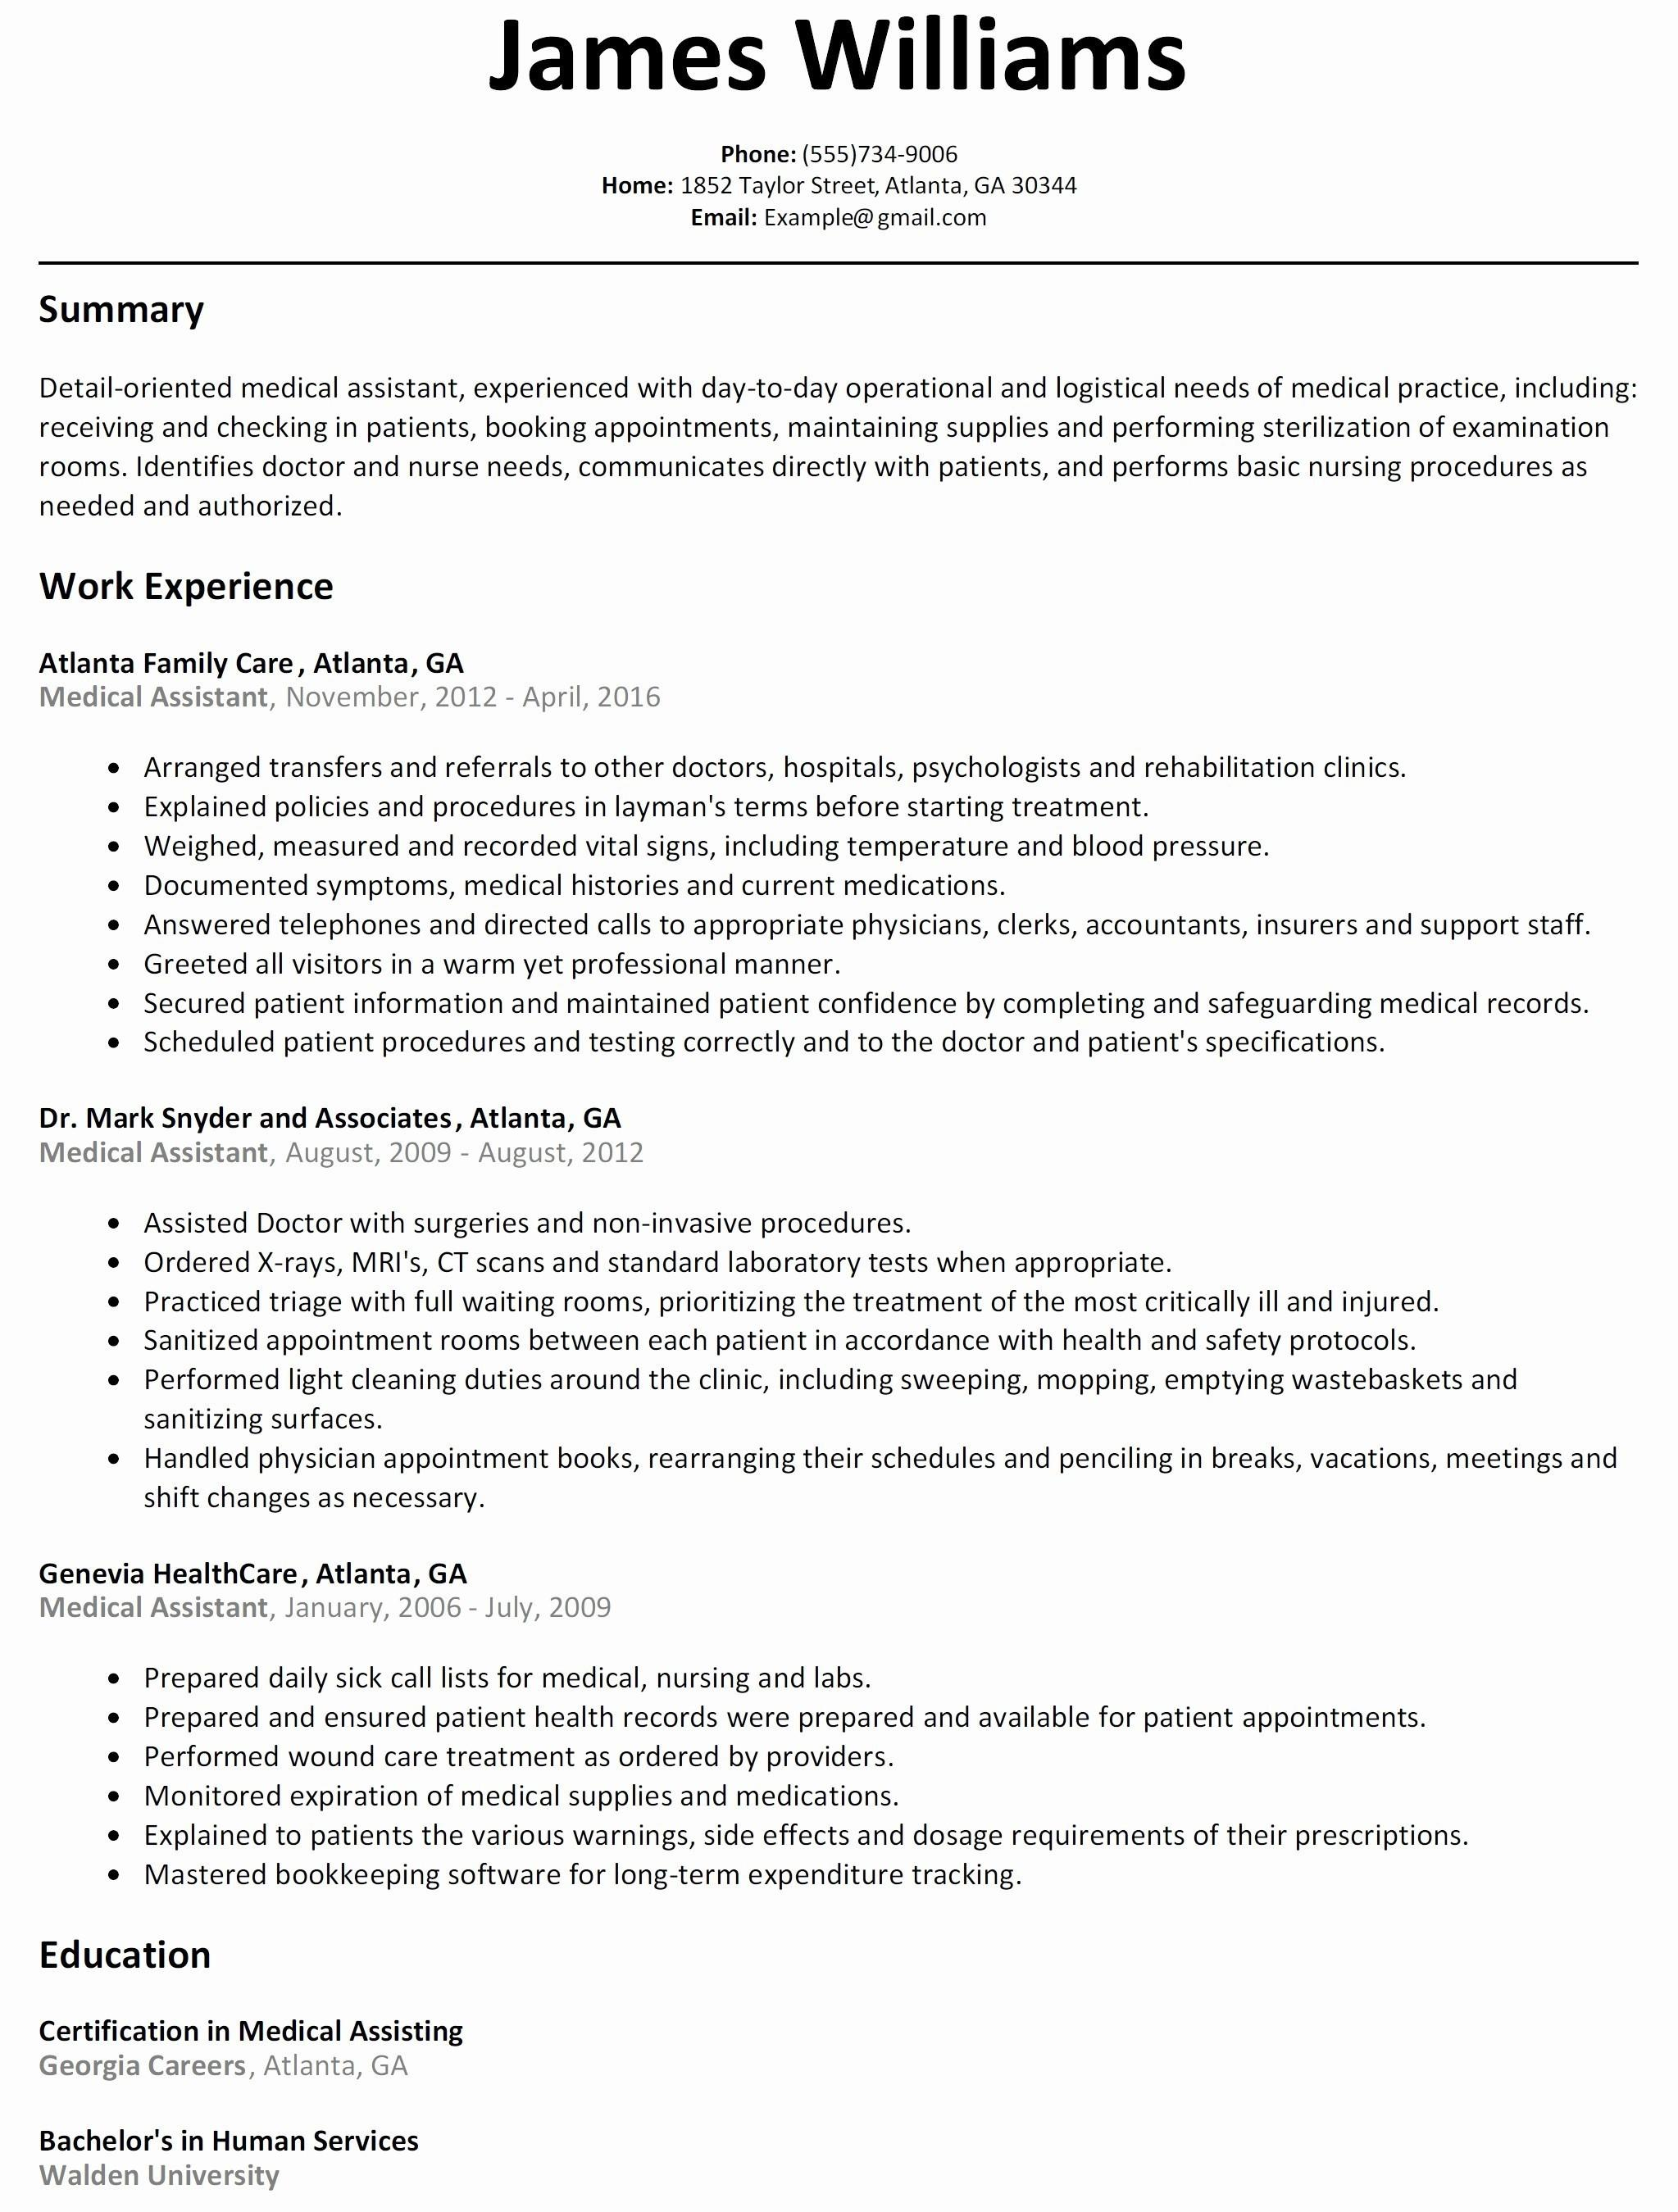 87 Excellent Great Looking Resume Templates for Graphics